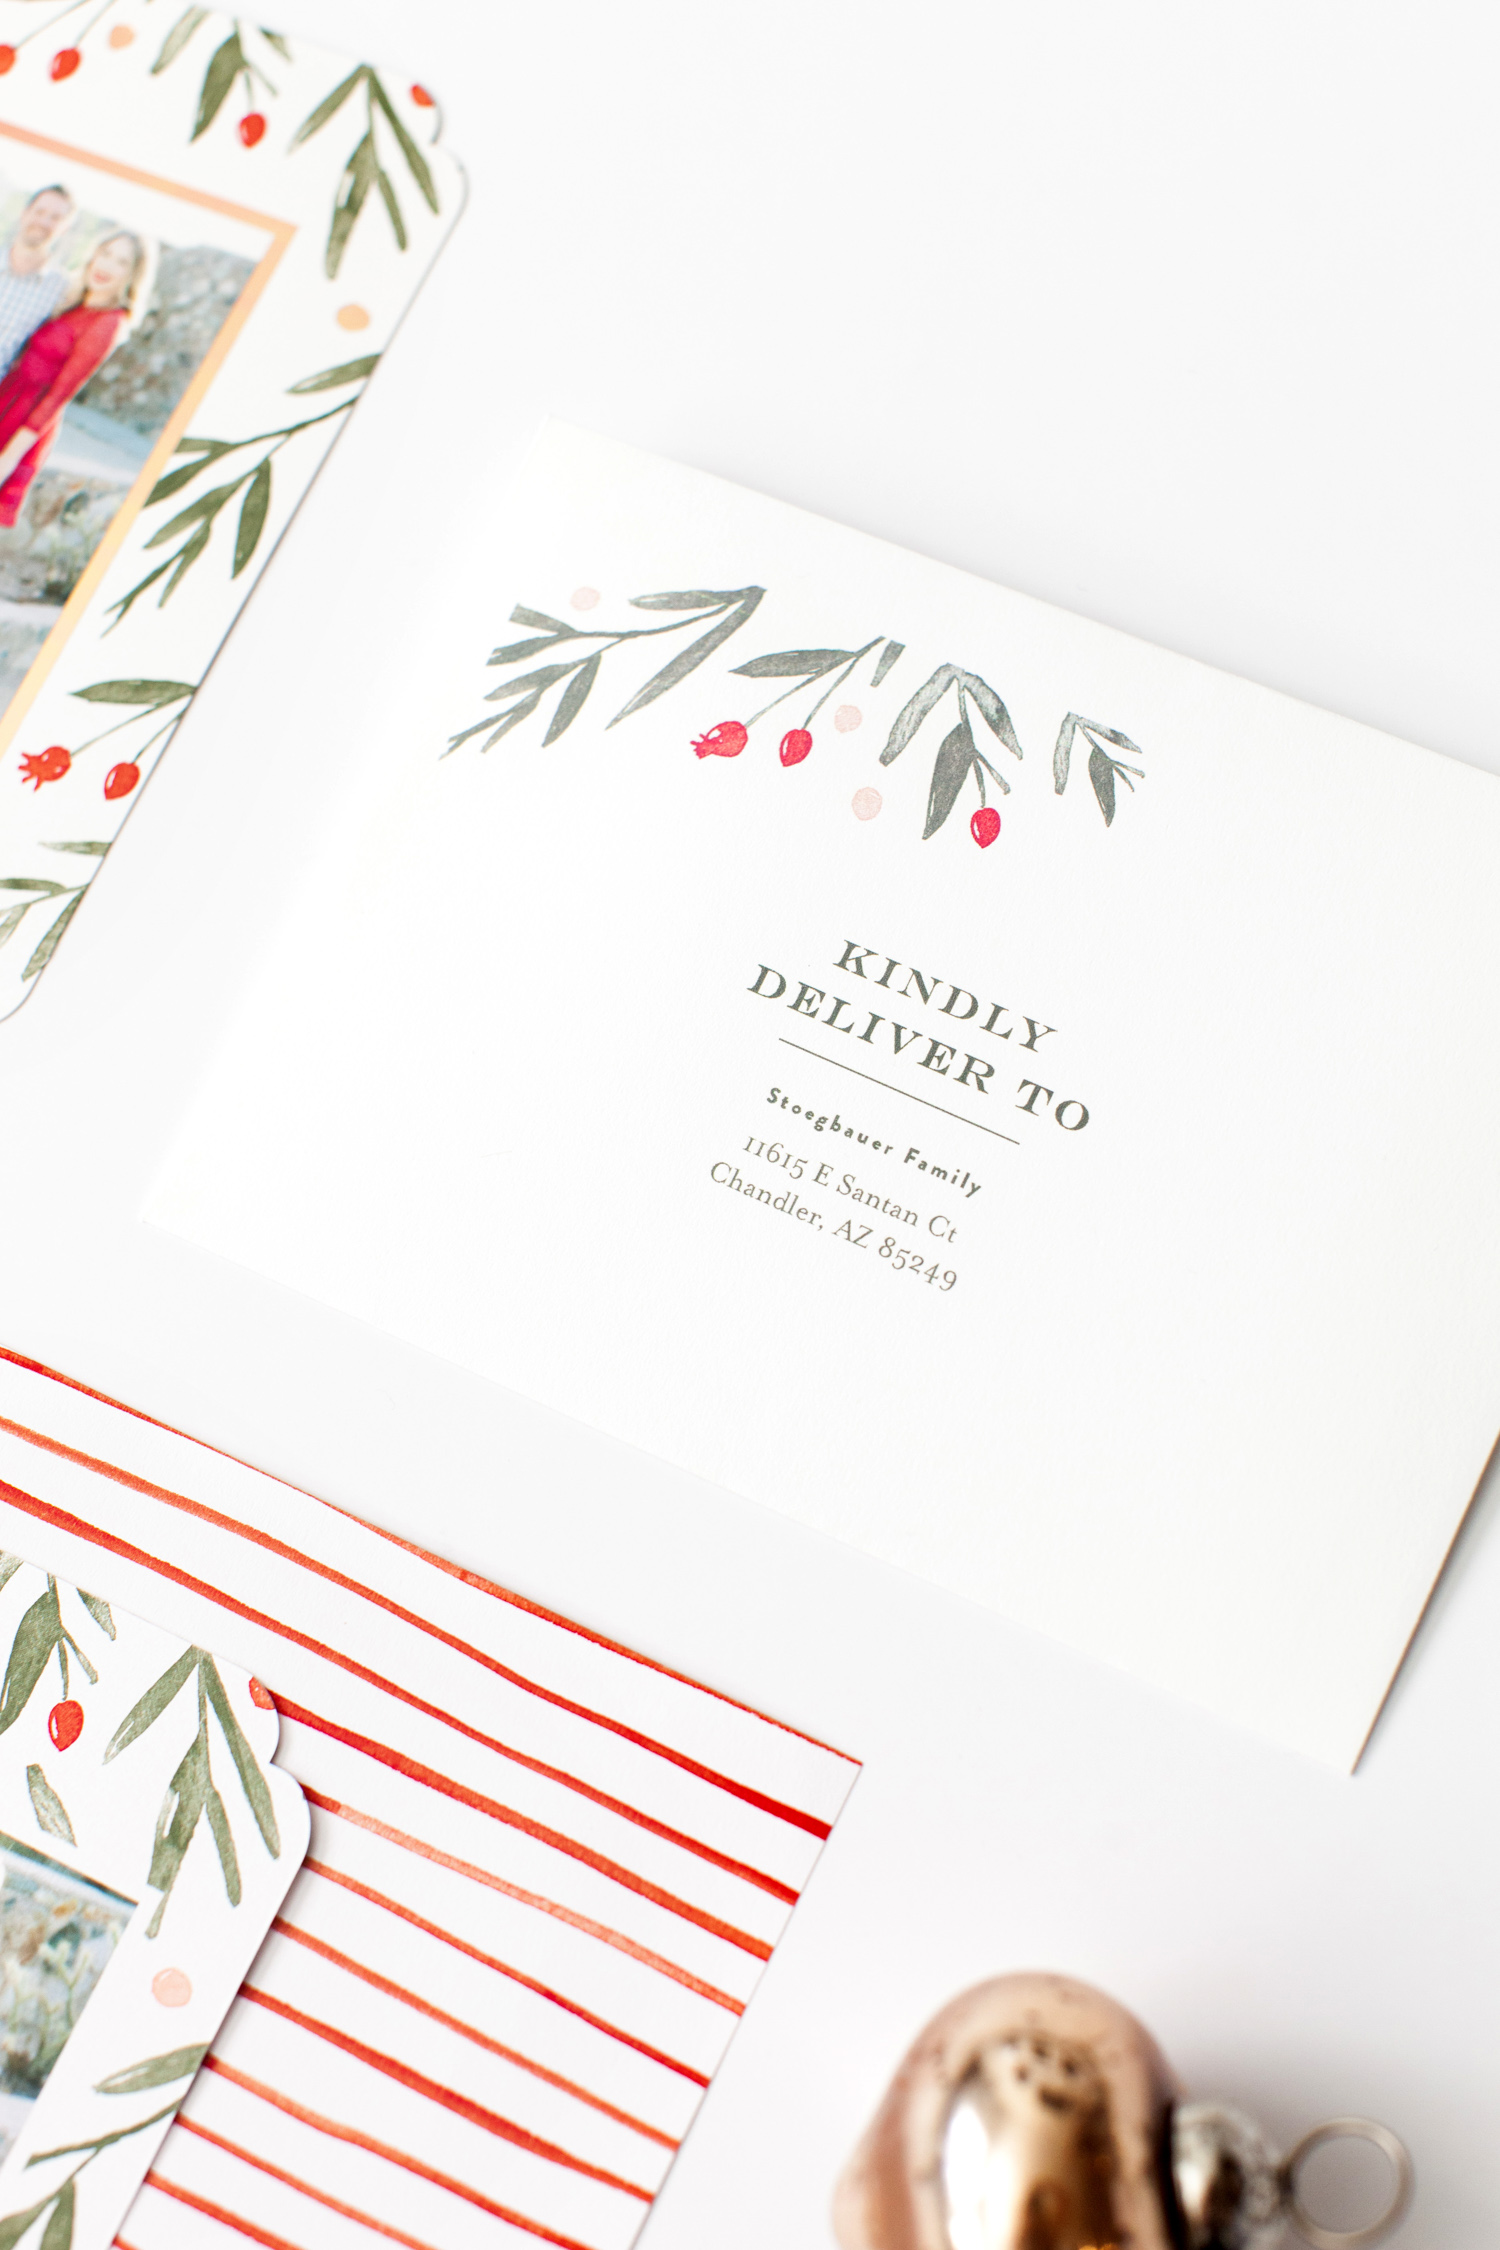 minted winter harvest family holiday card ten22 studio